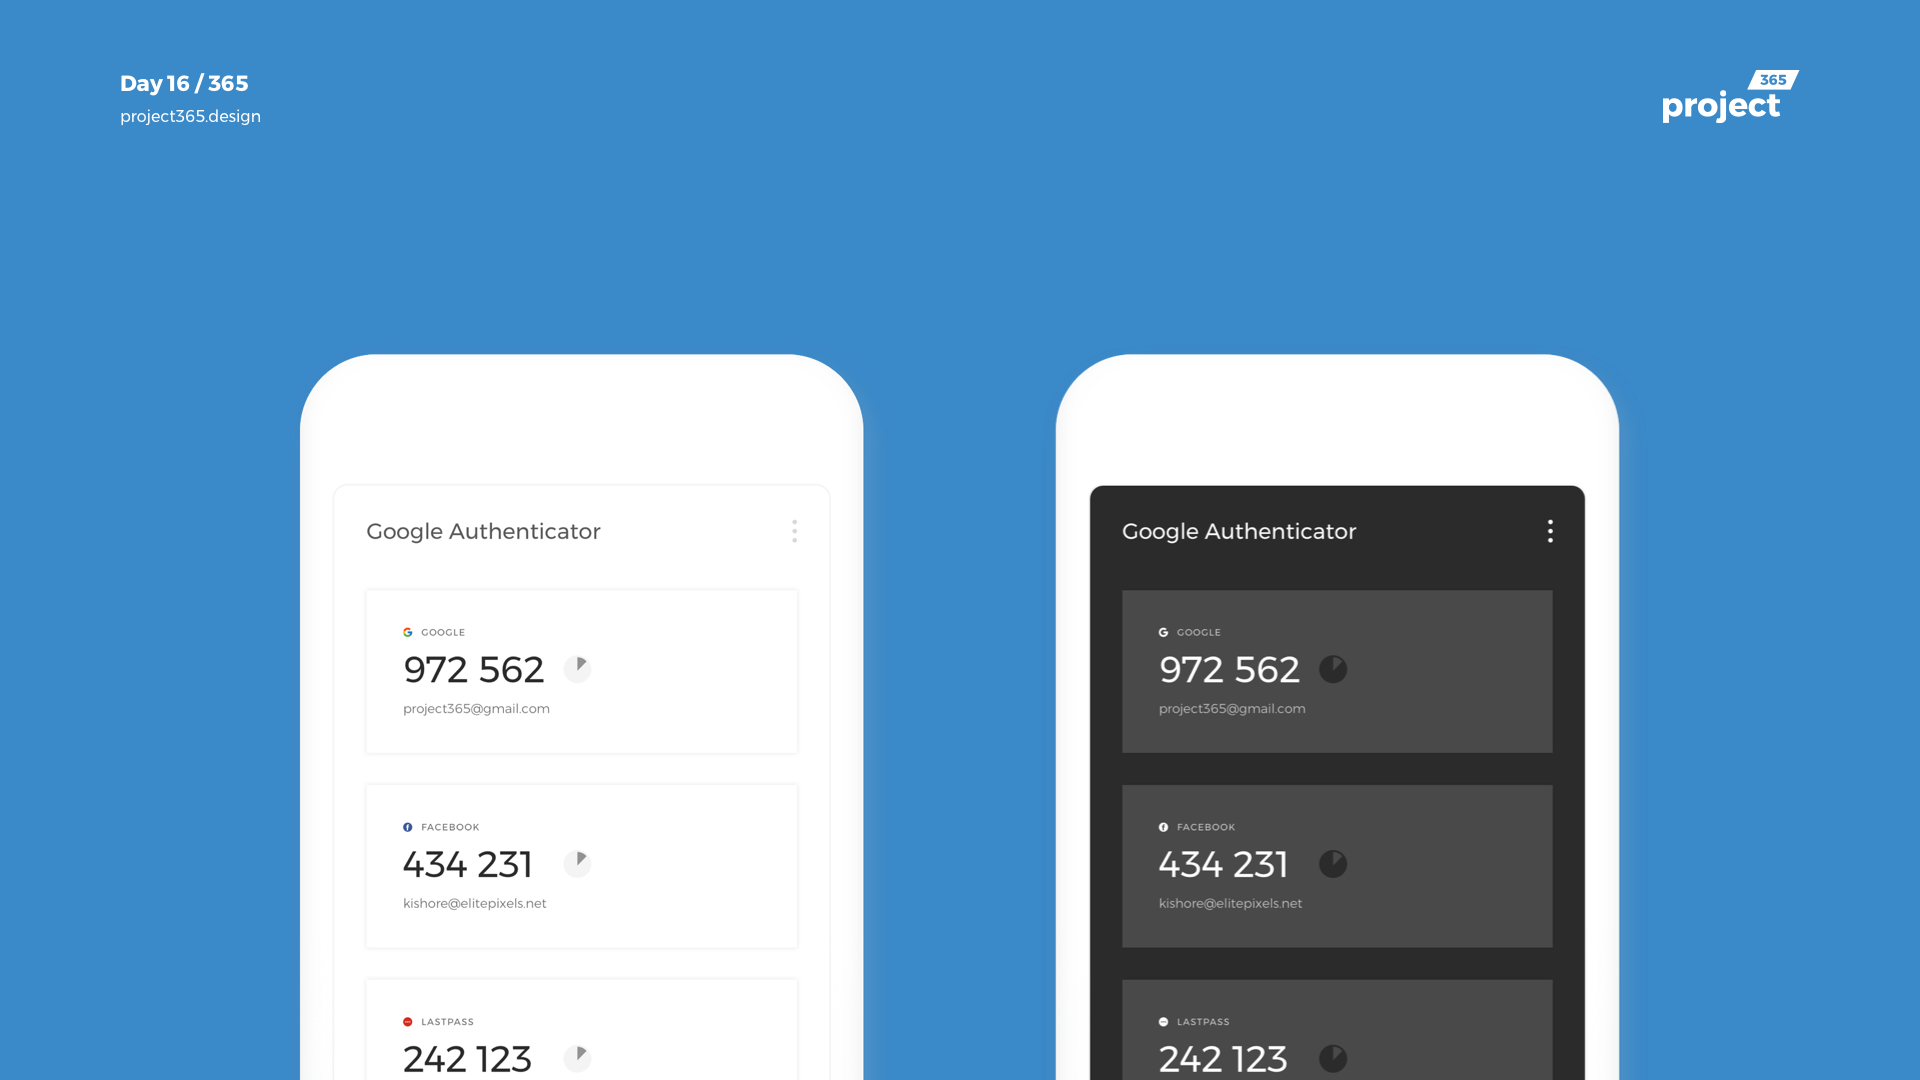 Day 16 – Google Authenticator Redesign